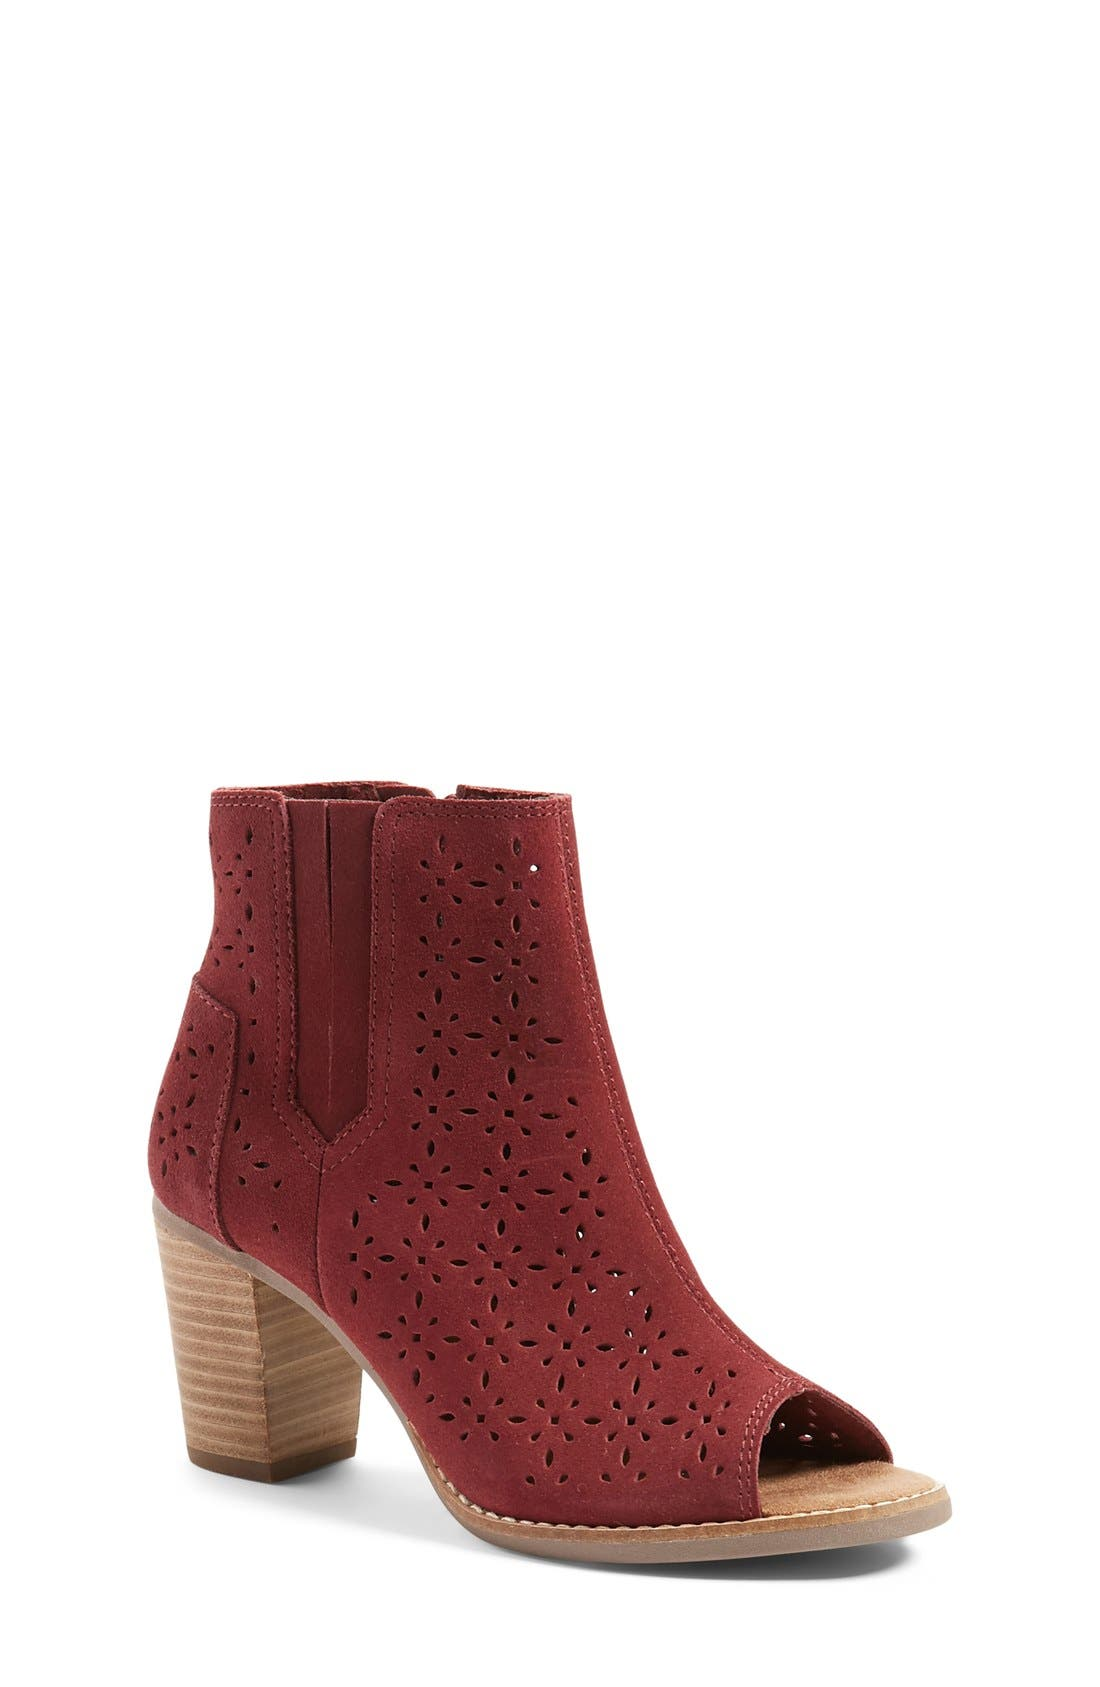 'Majorca' Peep Toe Bootie,                             Main thumbnail 1, color,                             Burgundy Suede